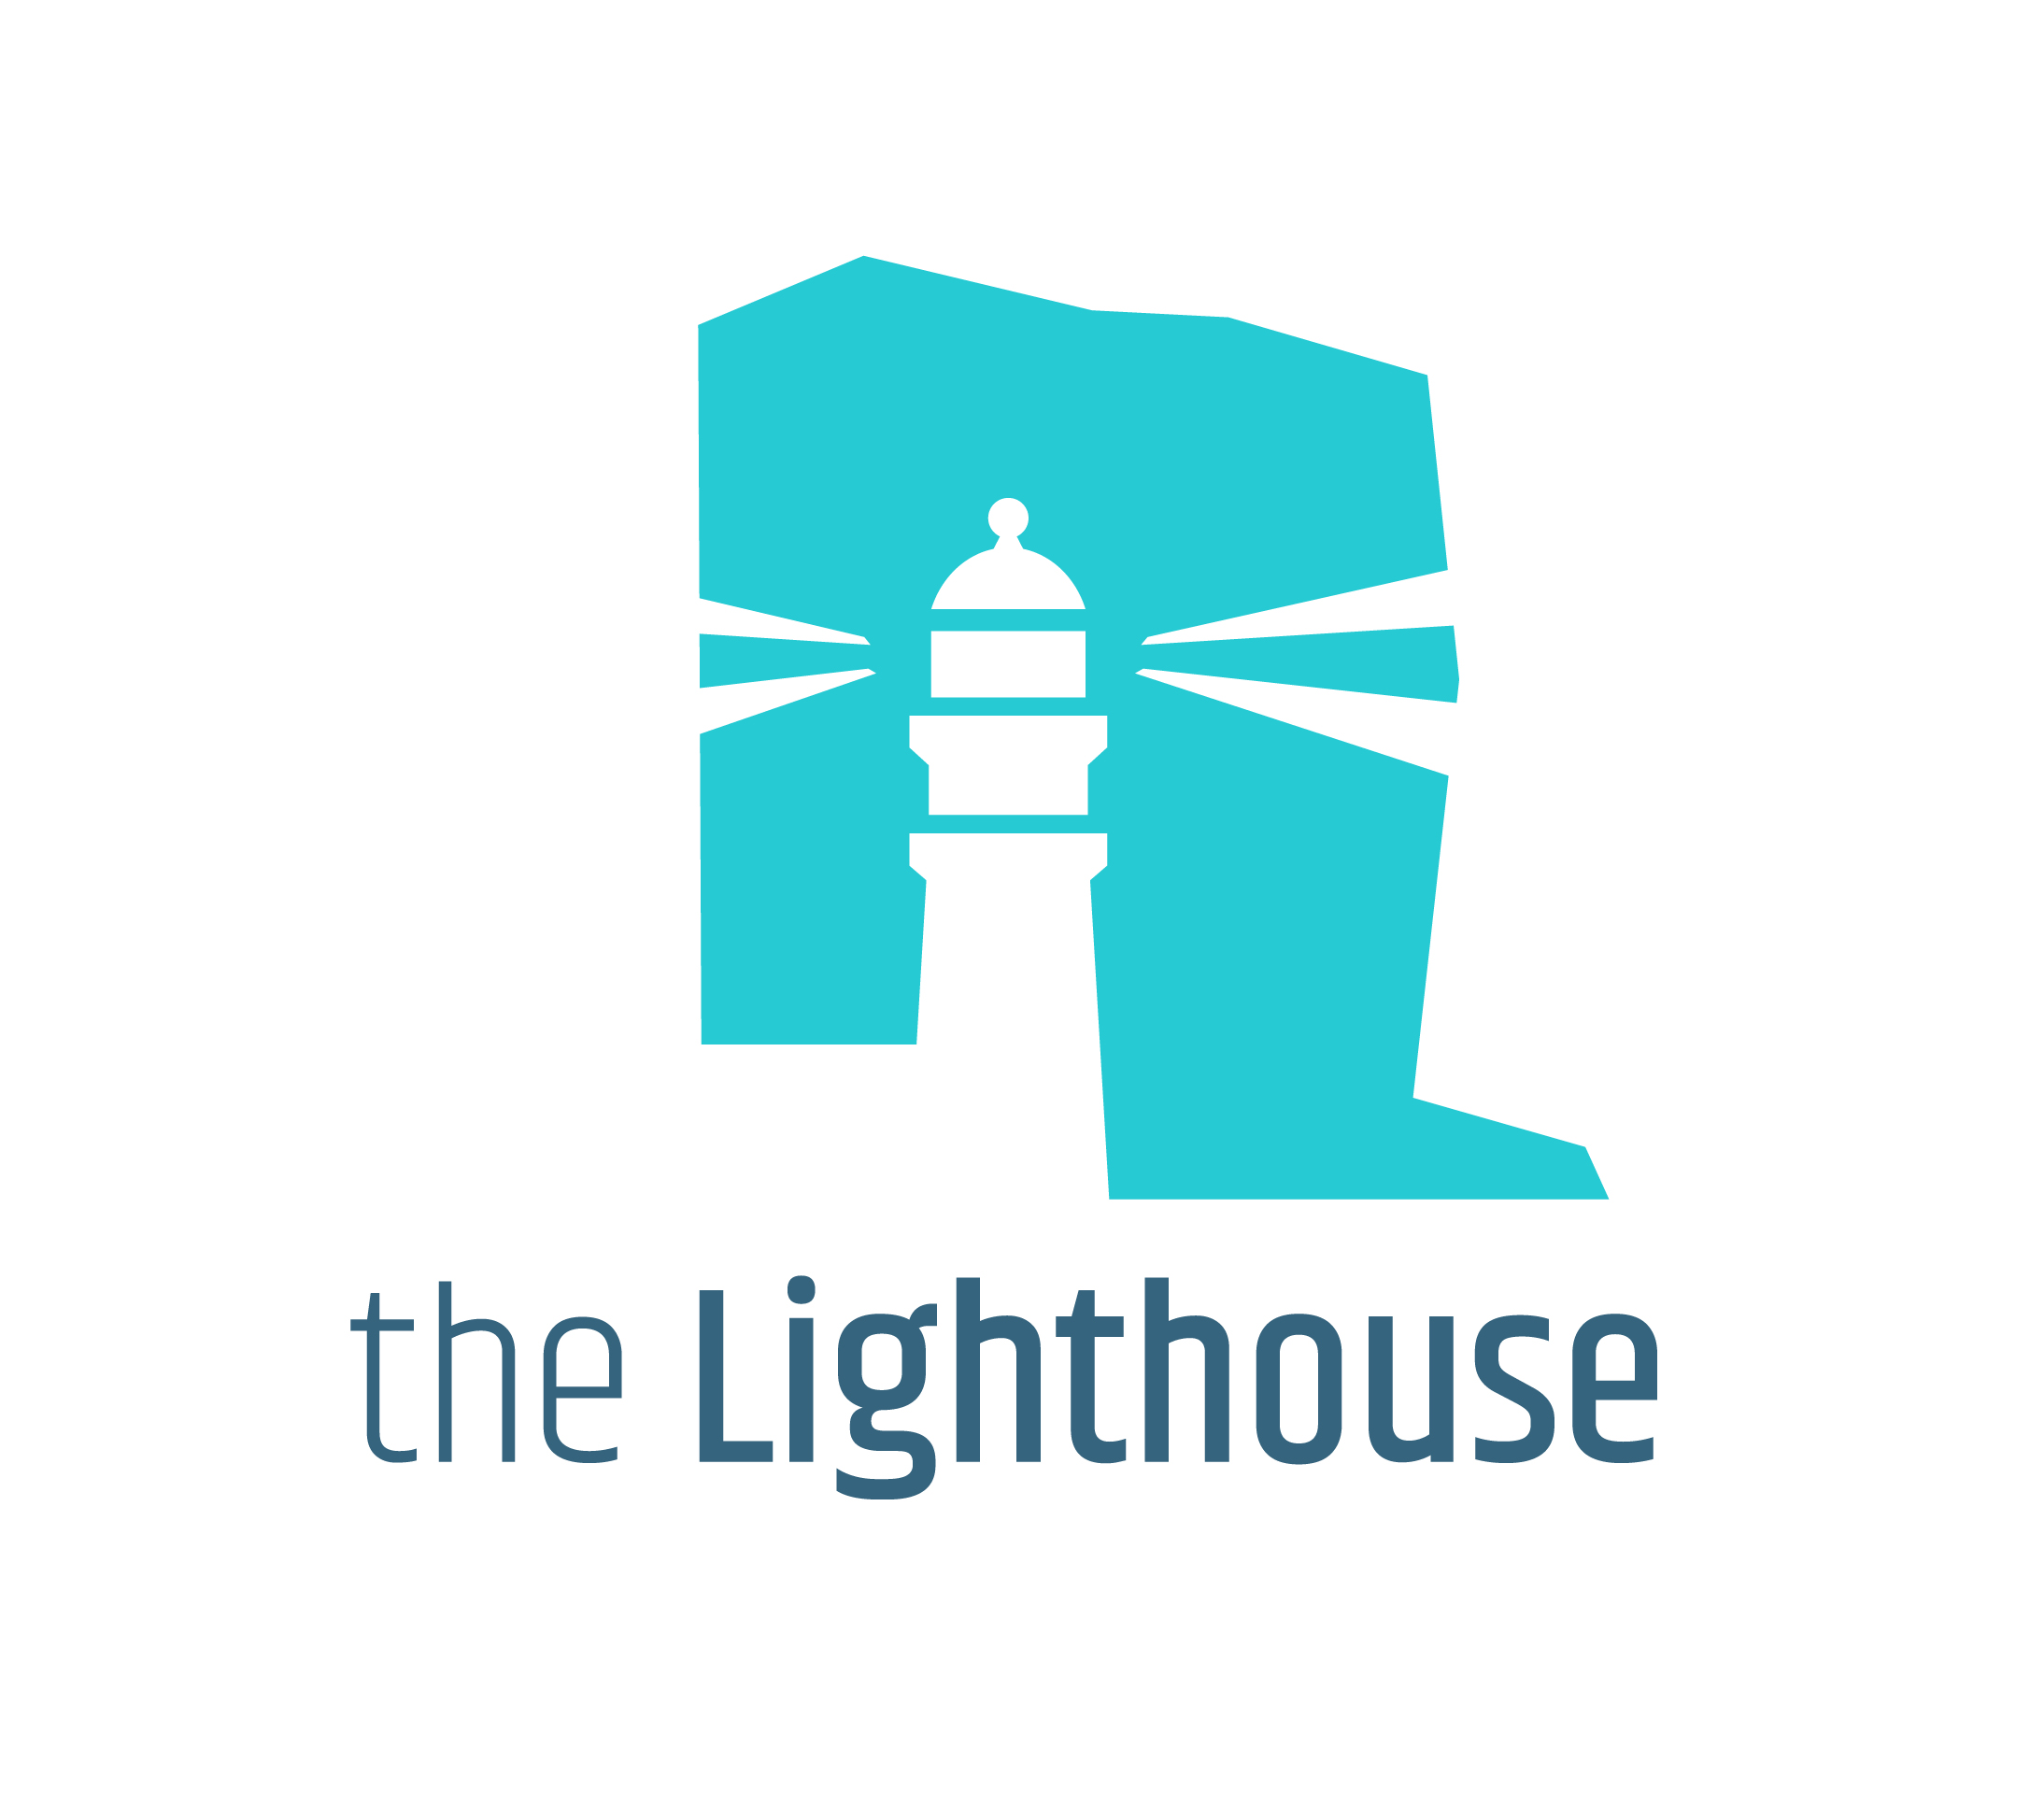 the lighthouse.jpg